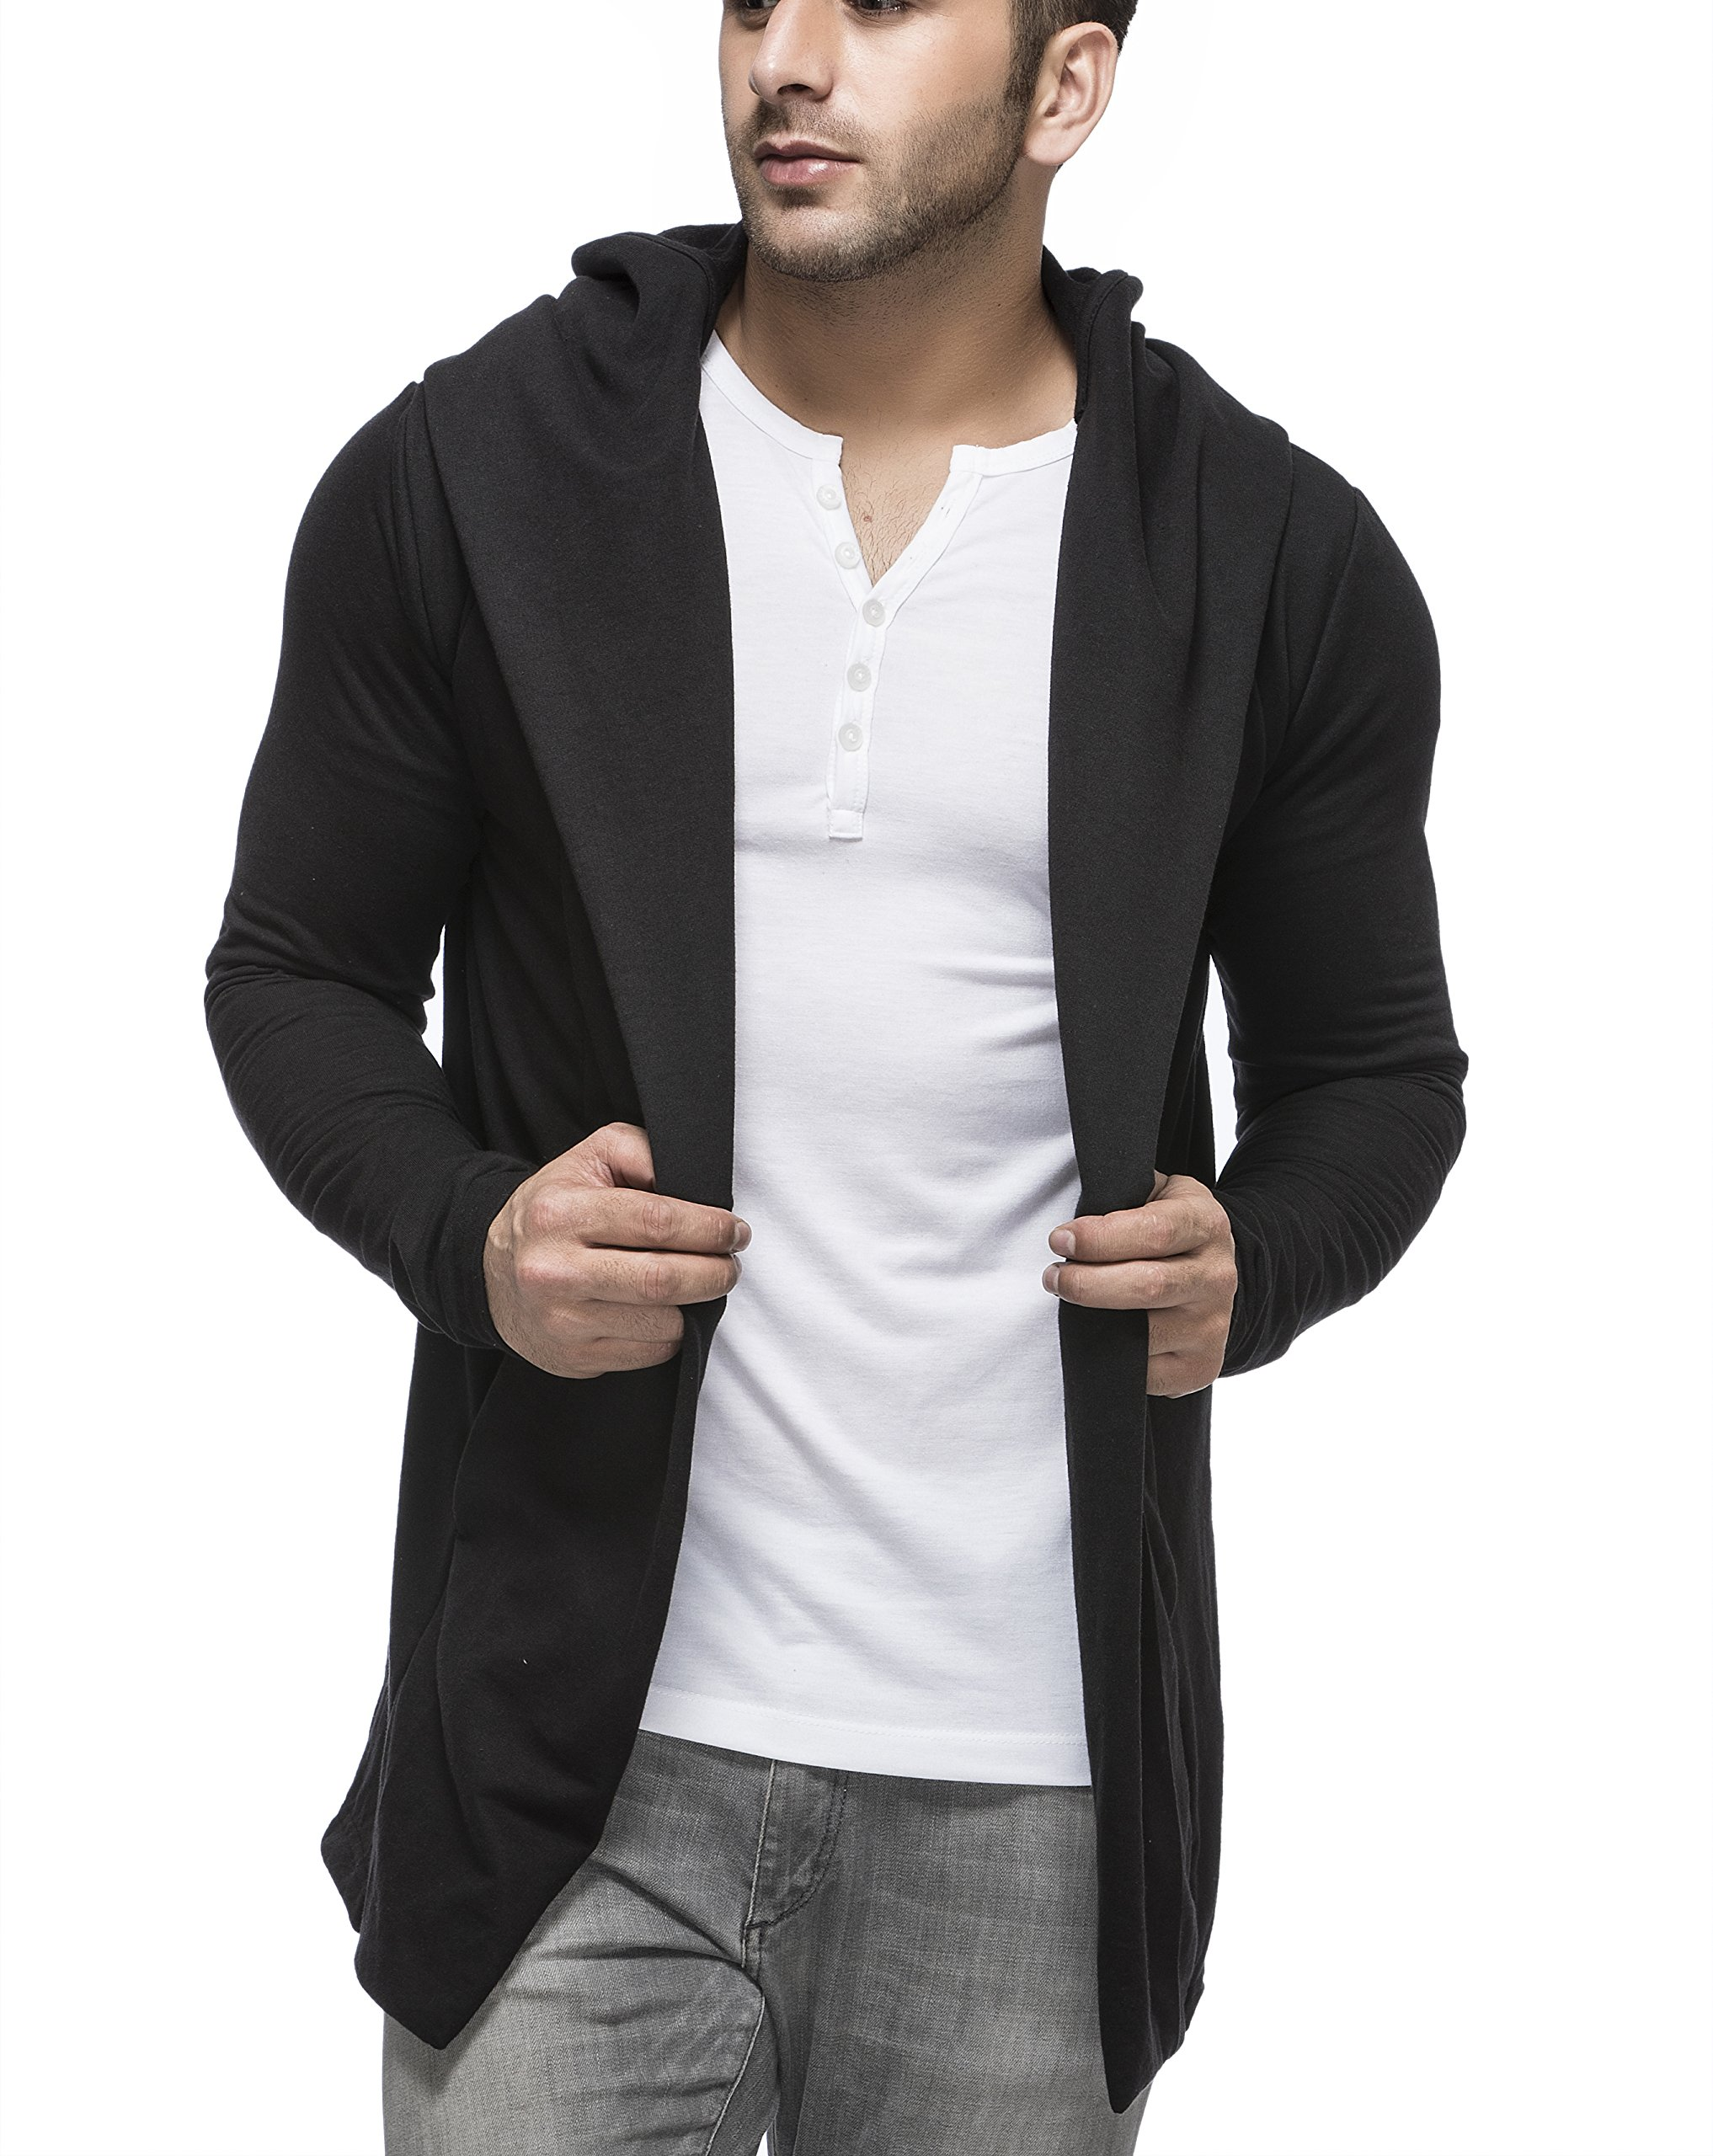 Tinted Mens Cotton Blend Hooded Cardigan, Black, Medium by Tinted